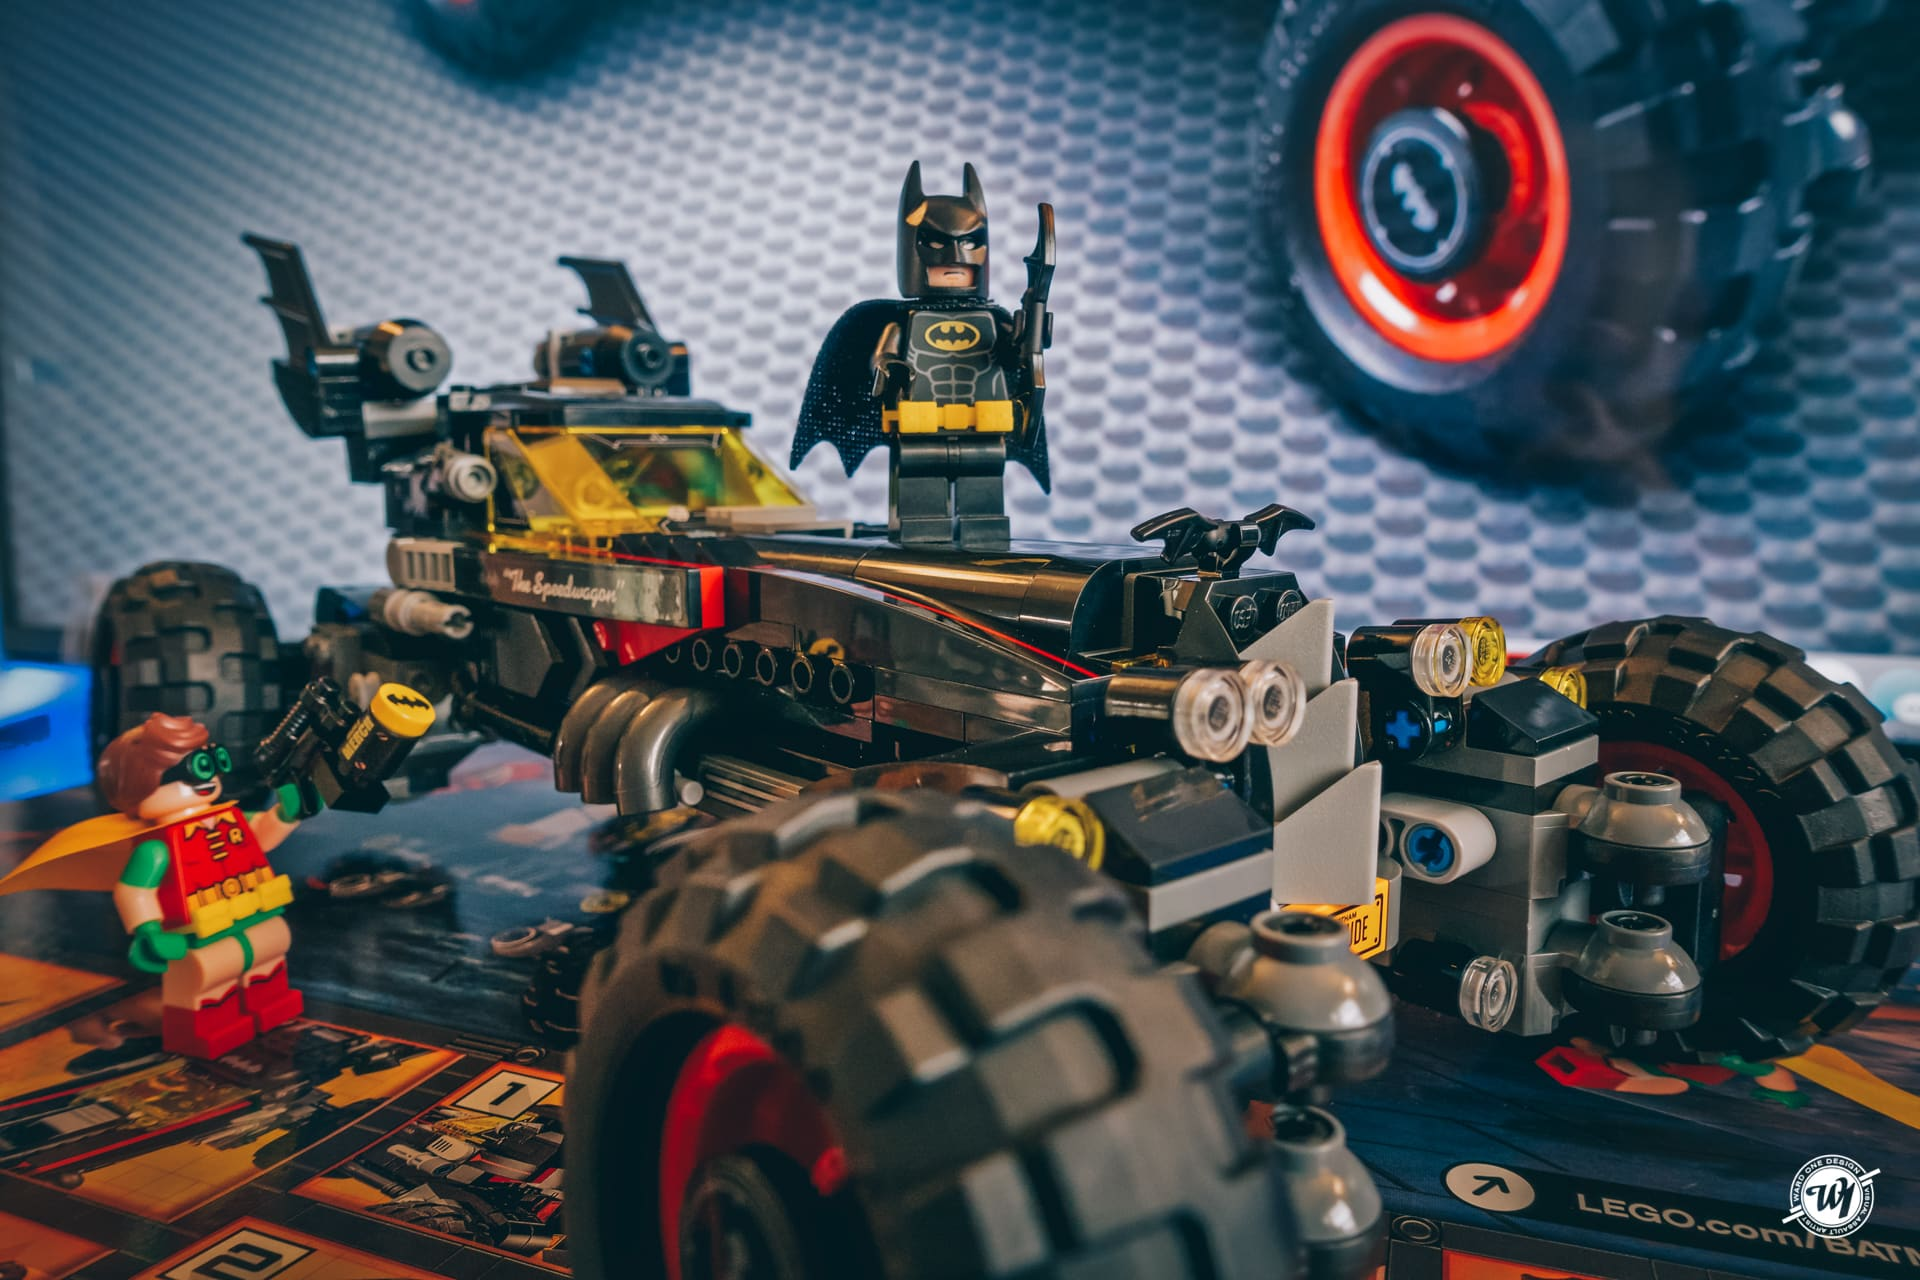 THE ALL-NEW LEGO ® BATMOBILE FROM CHEVY Ward 1 Design